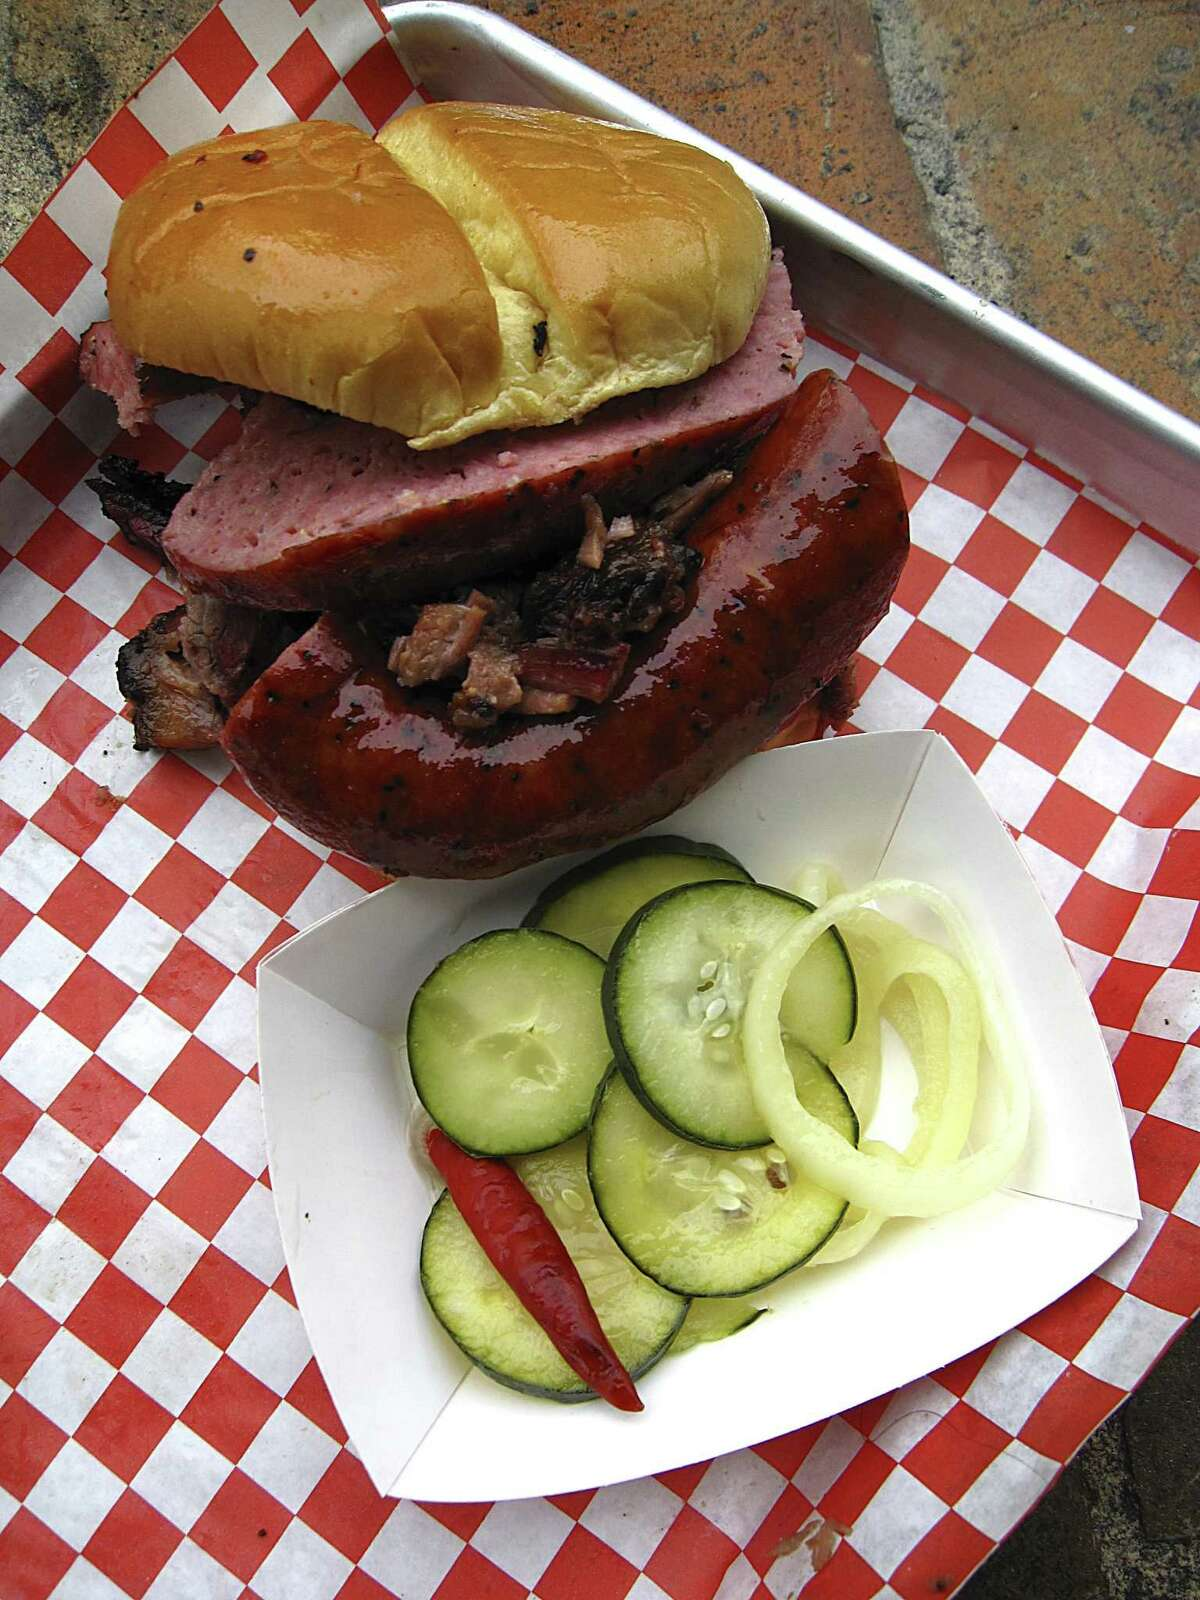 Brisket and sausage sandwich with housemade pickles from Burnwood '68